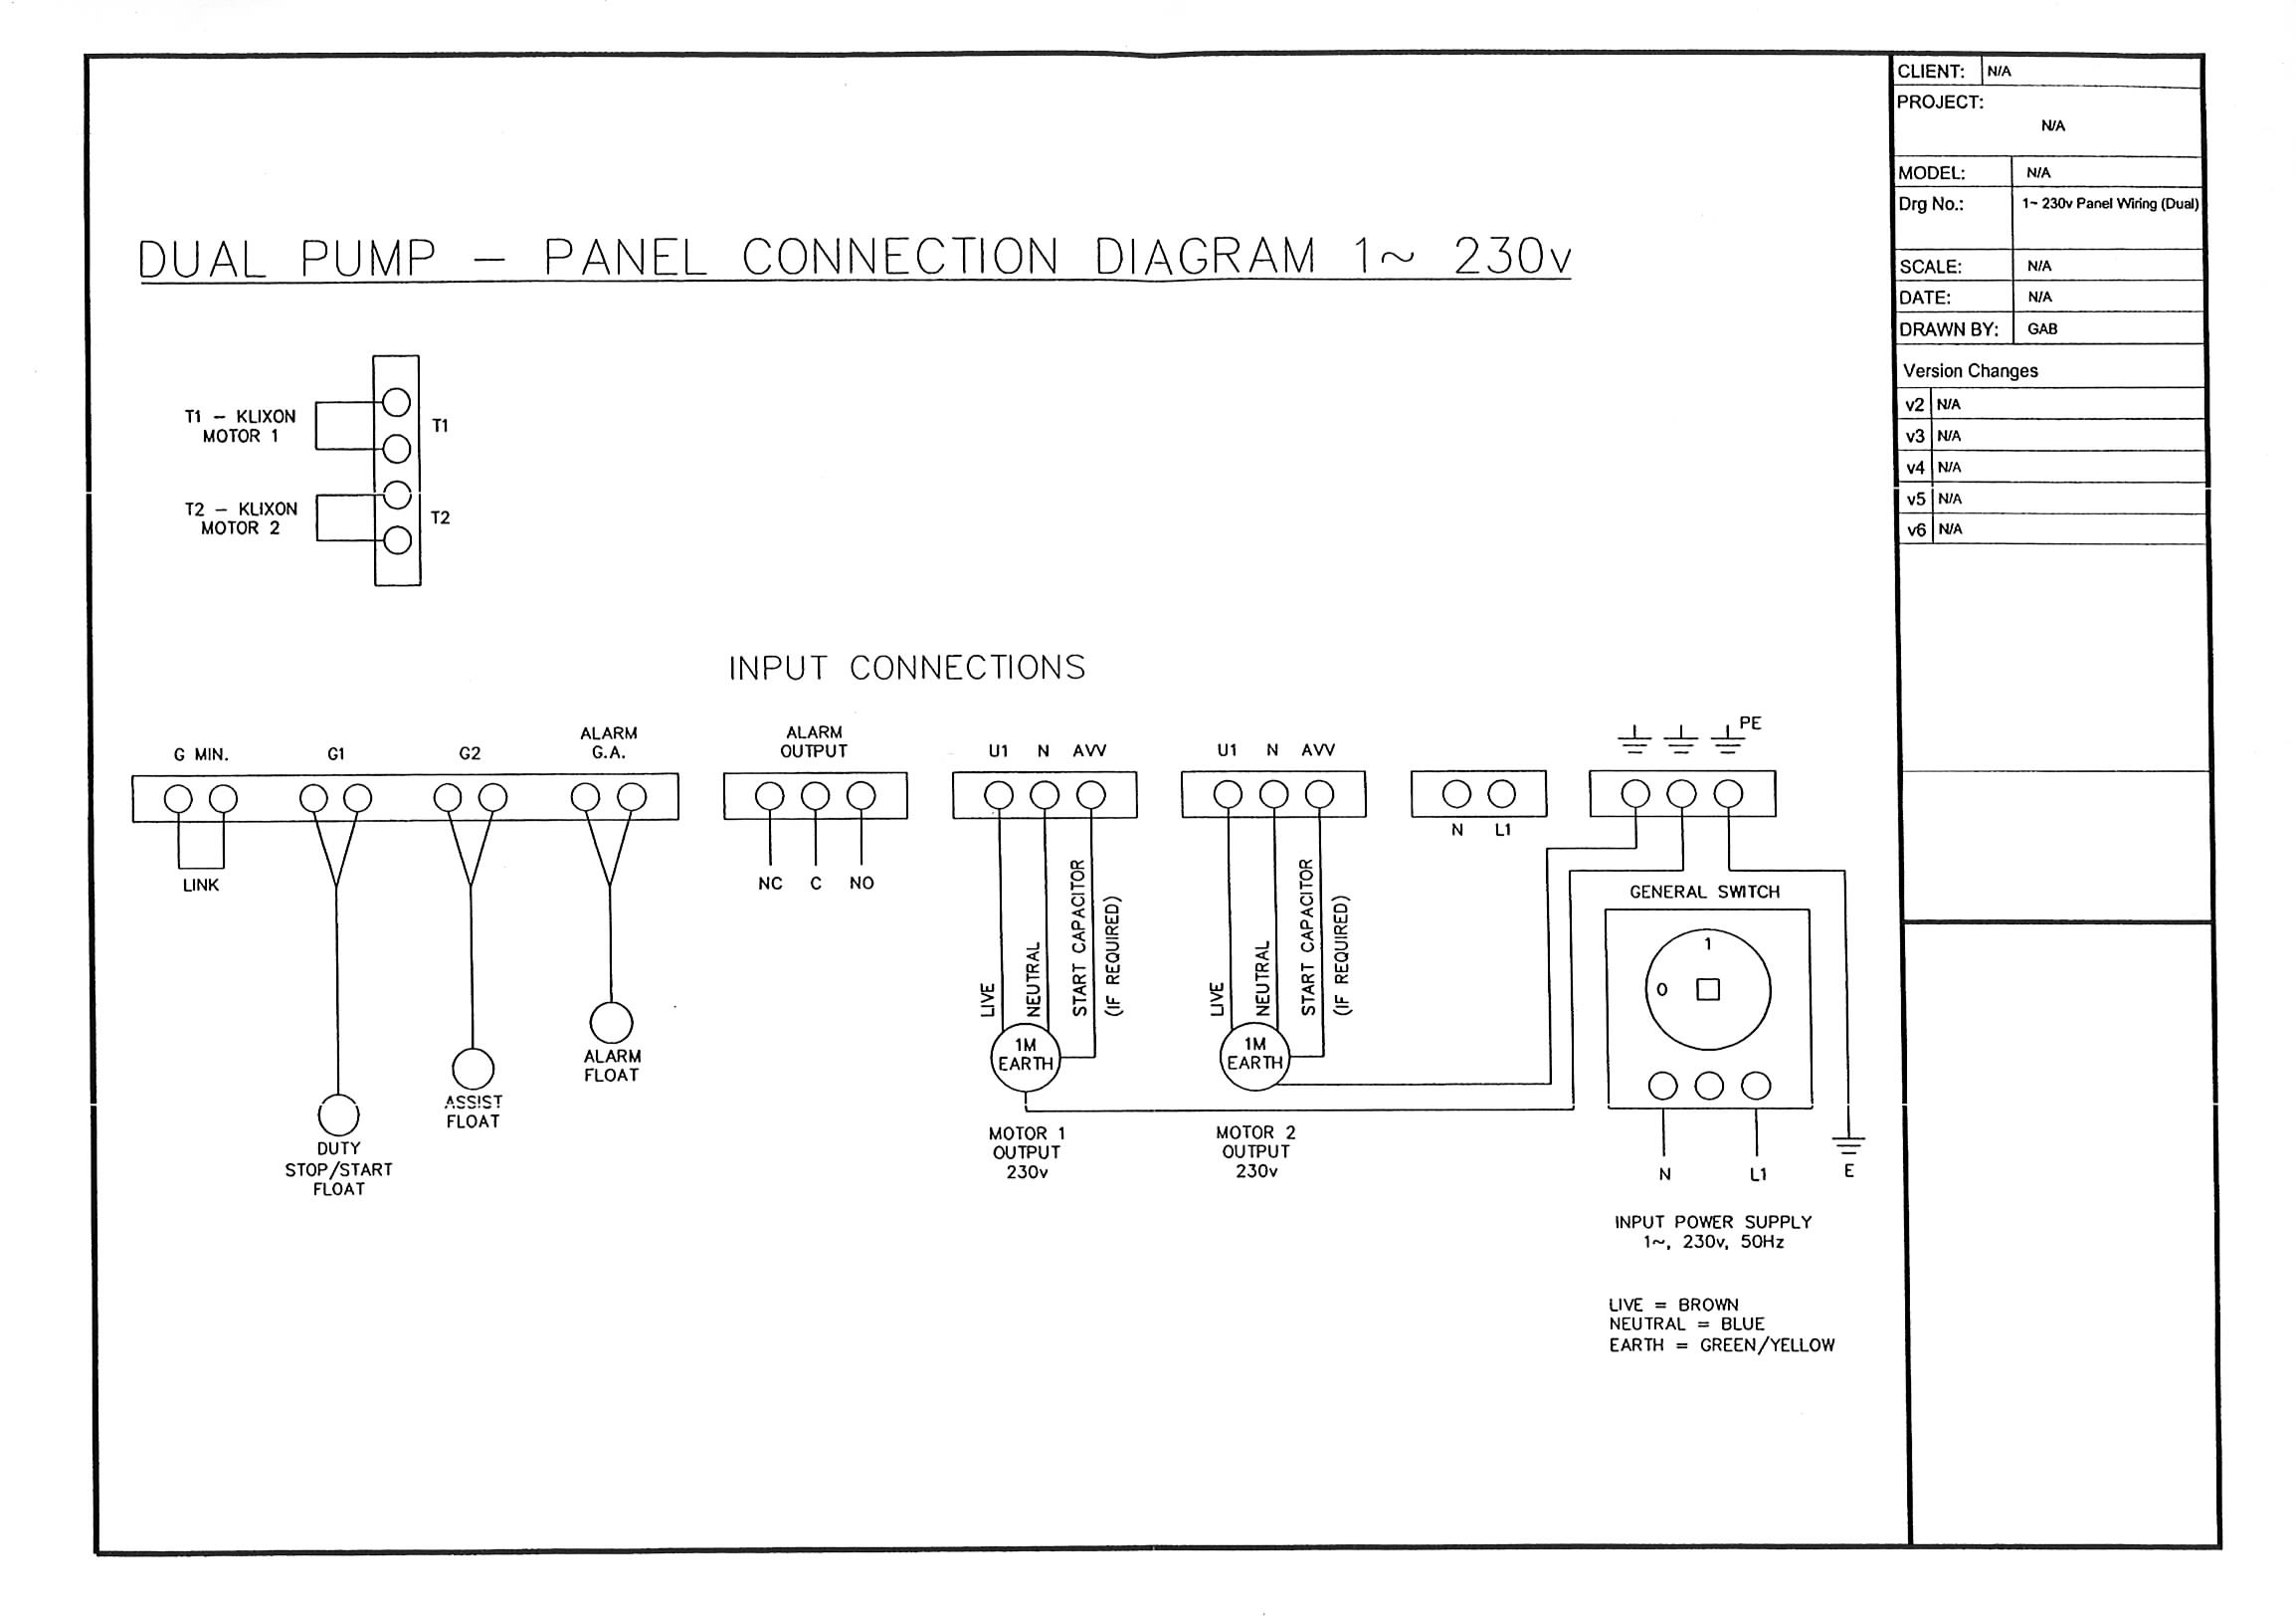 AES Duplex Dual Pump Control Panel duplex dual pump control panel automated environmental systems control panel wiring diagrams at virtualis.co